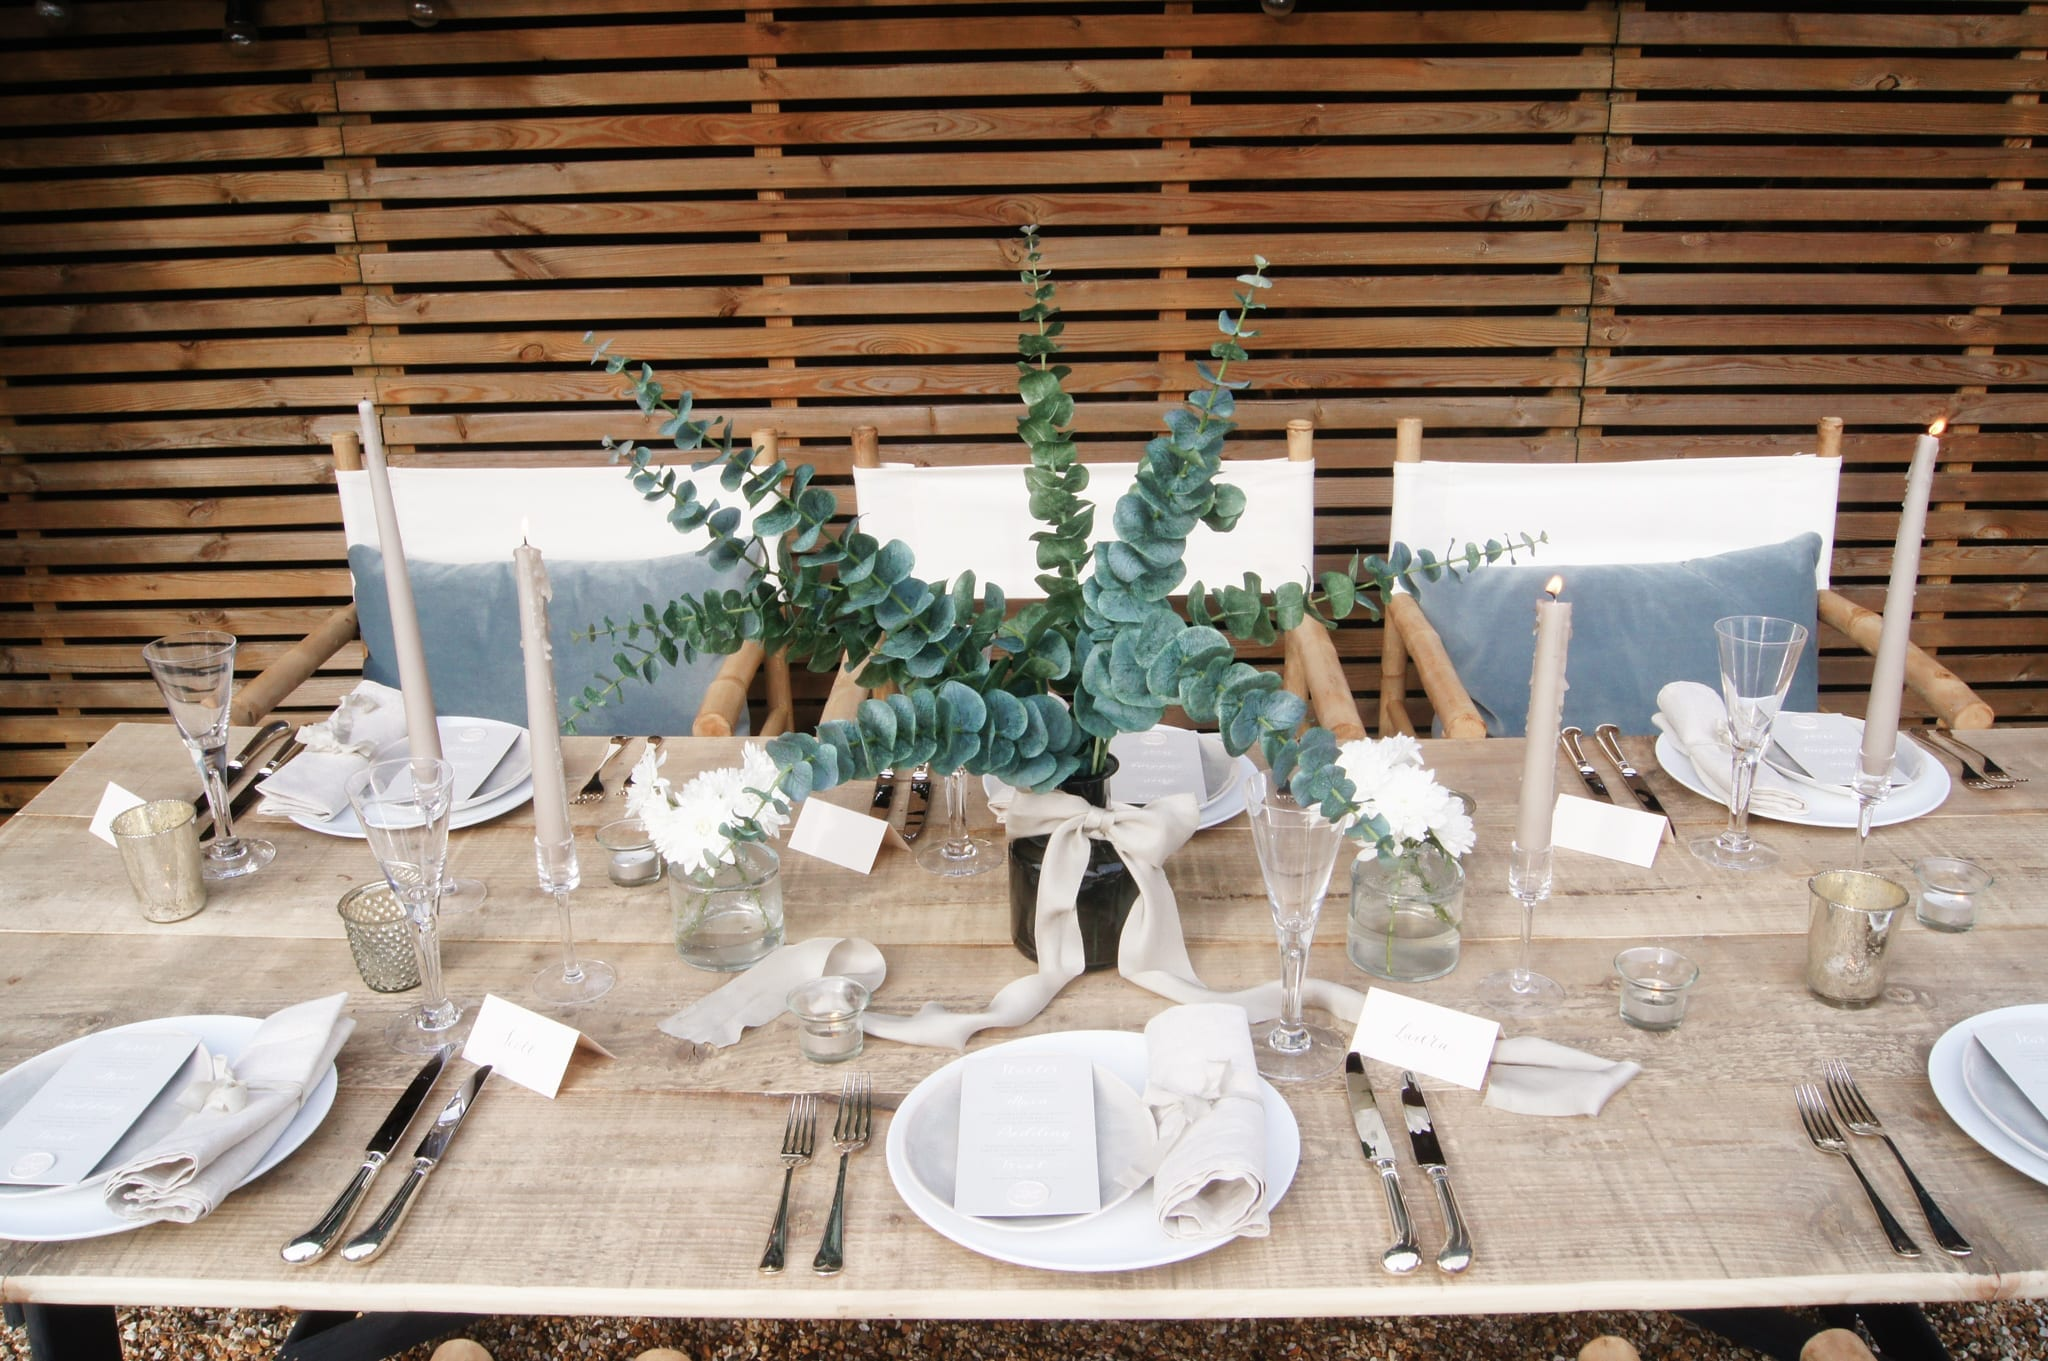 Table set up with eucalyptus and ribbons